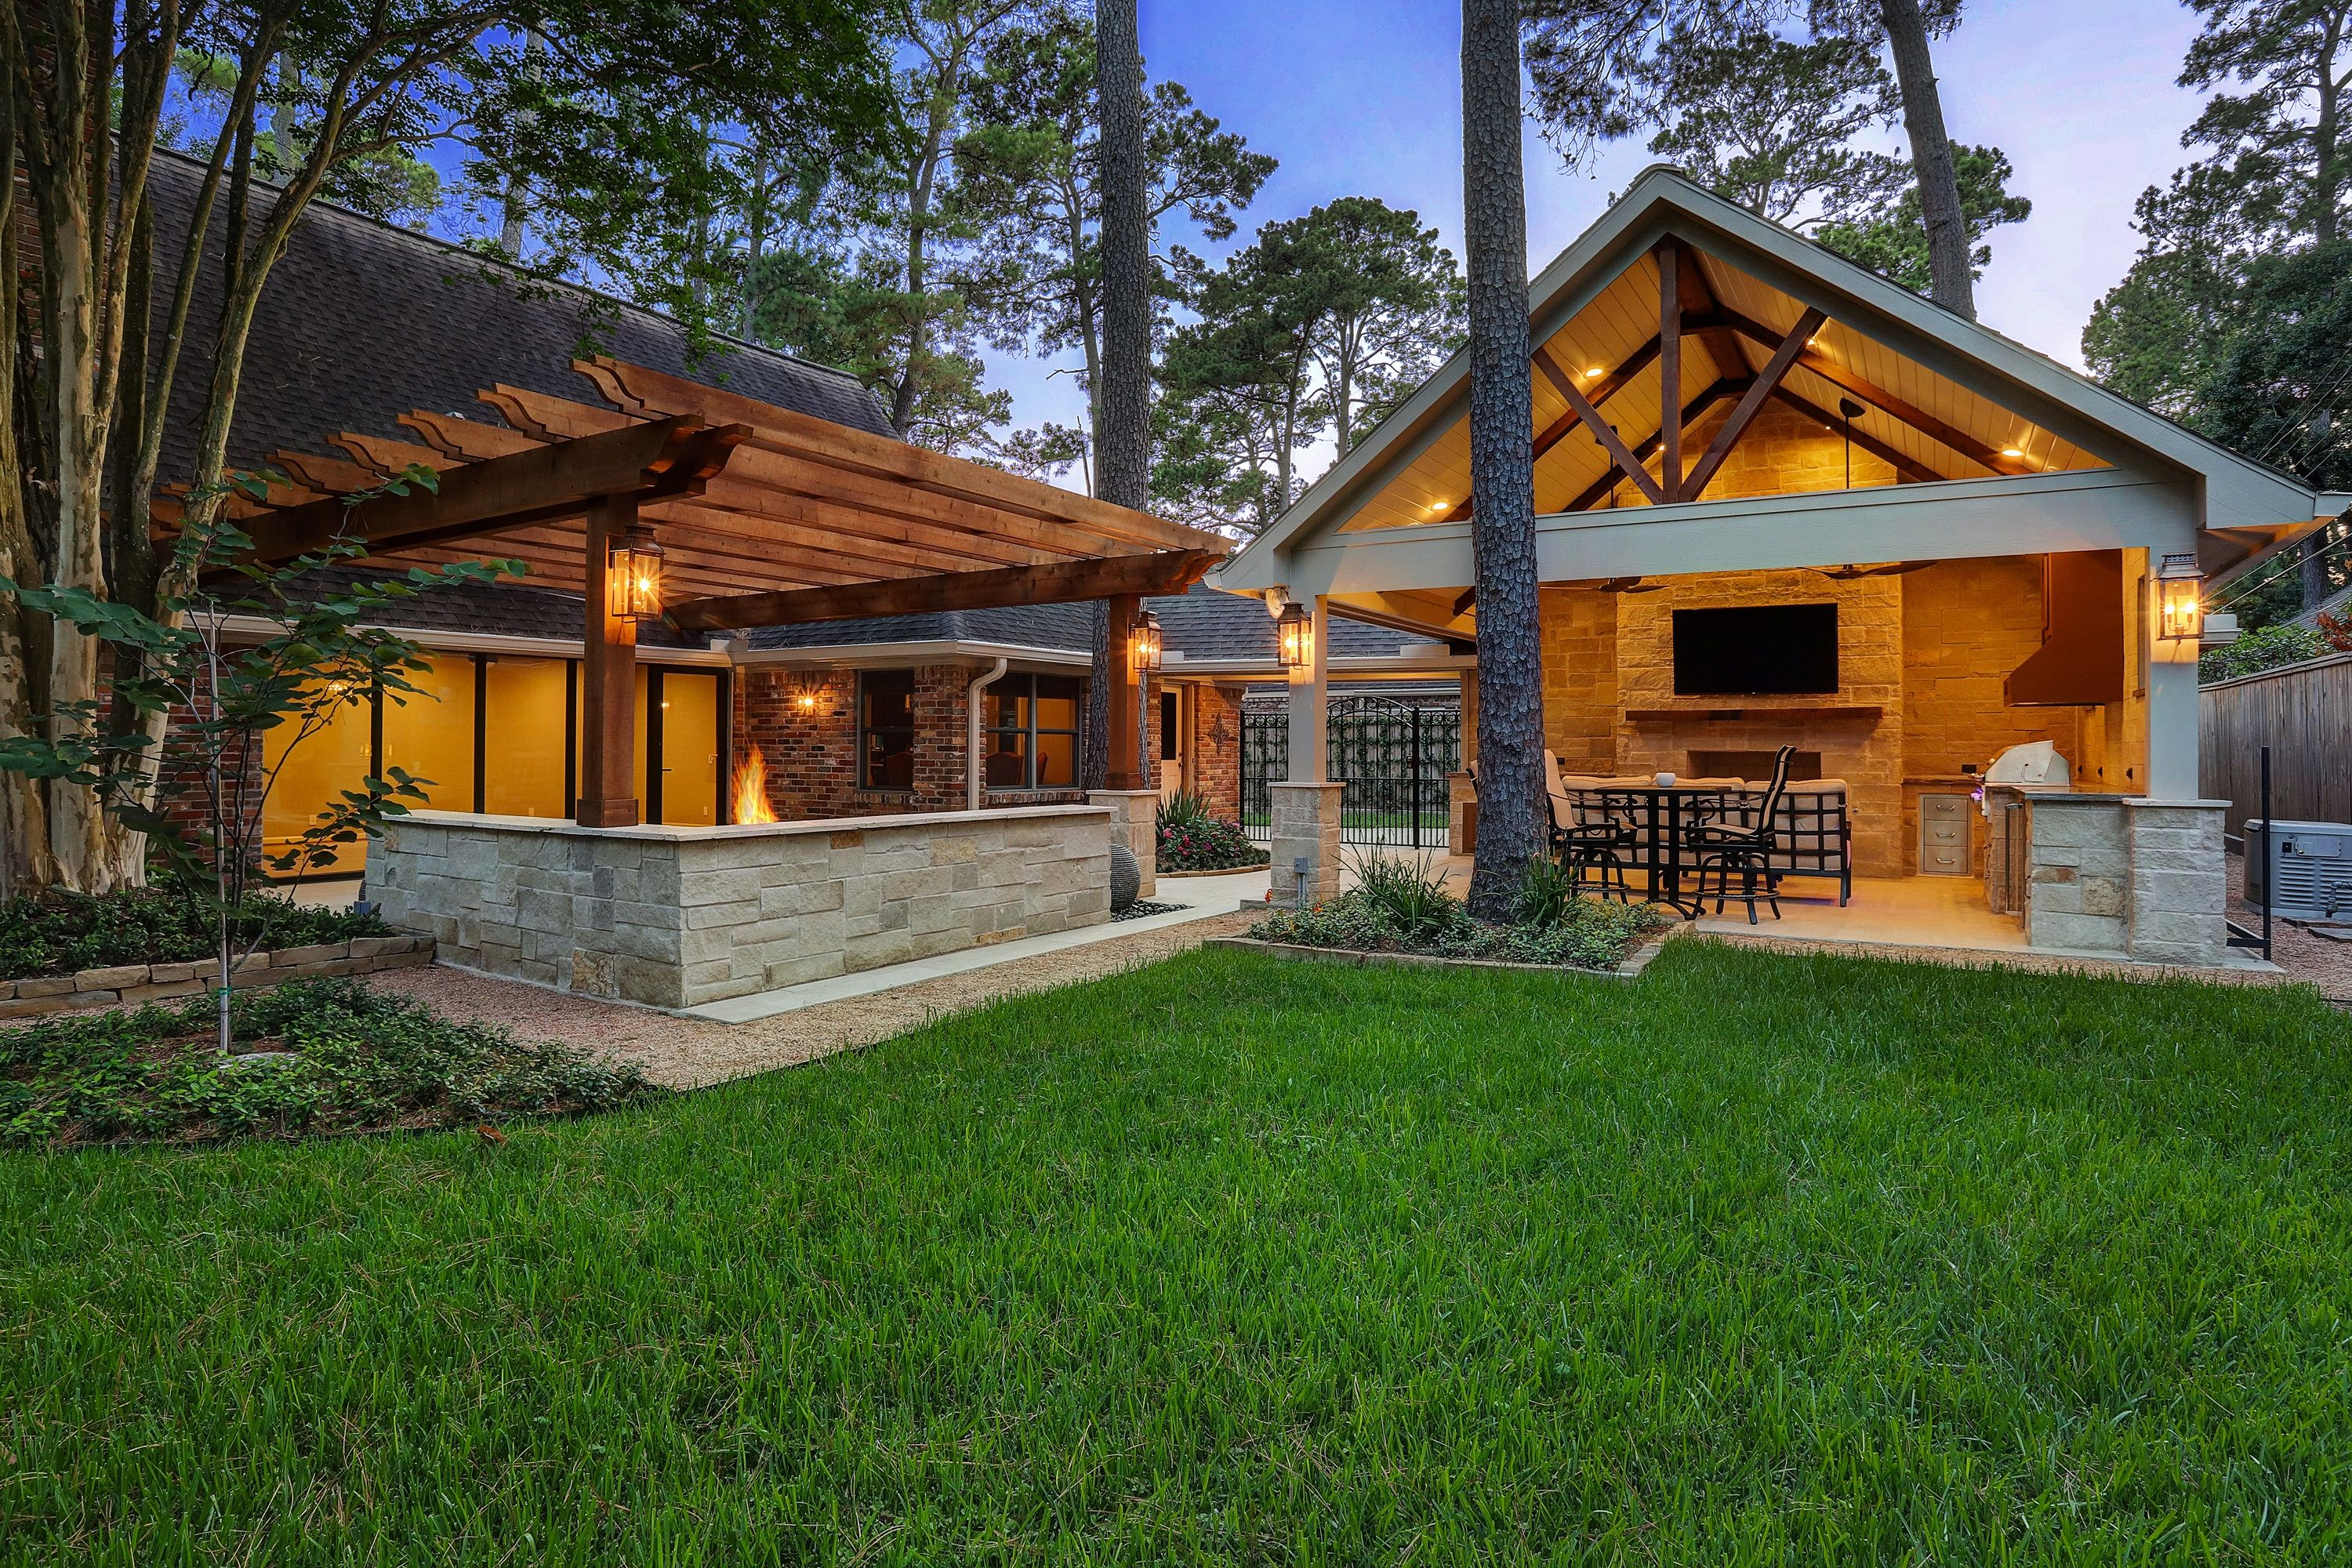 Outdoor Remodel With Pergola Gable Roof Fireplace Fire Pit And Outdoor Kitchen Outdoor Remodel Pergola Dream Patio